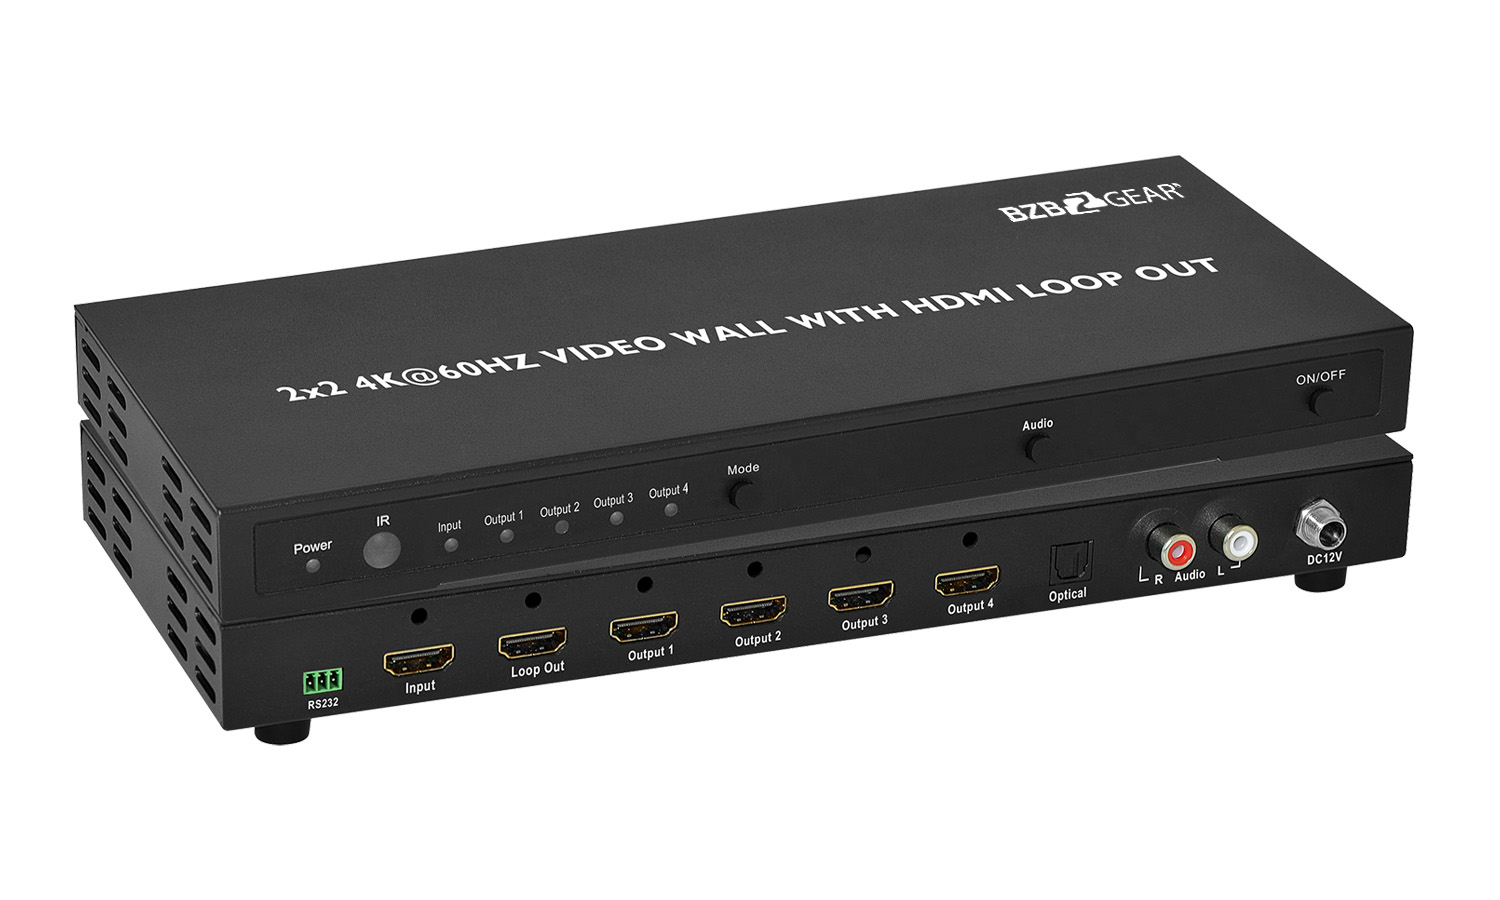 BG-UHD-VW2X2 2x2 4K 60Hz HDMI Video Wall controller with Audio by BZBGEAR